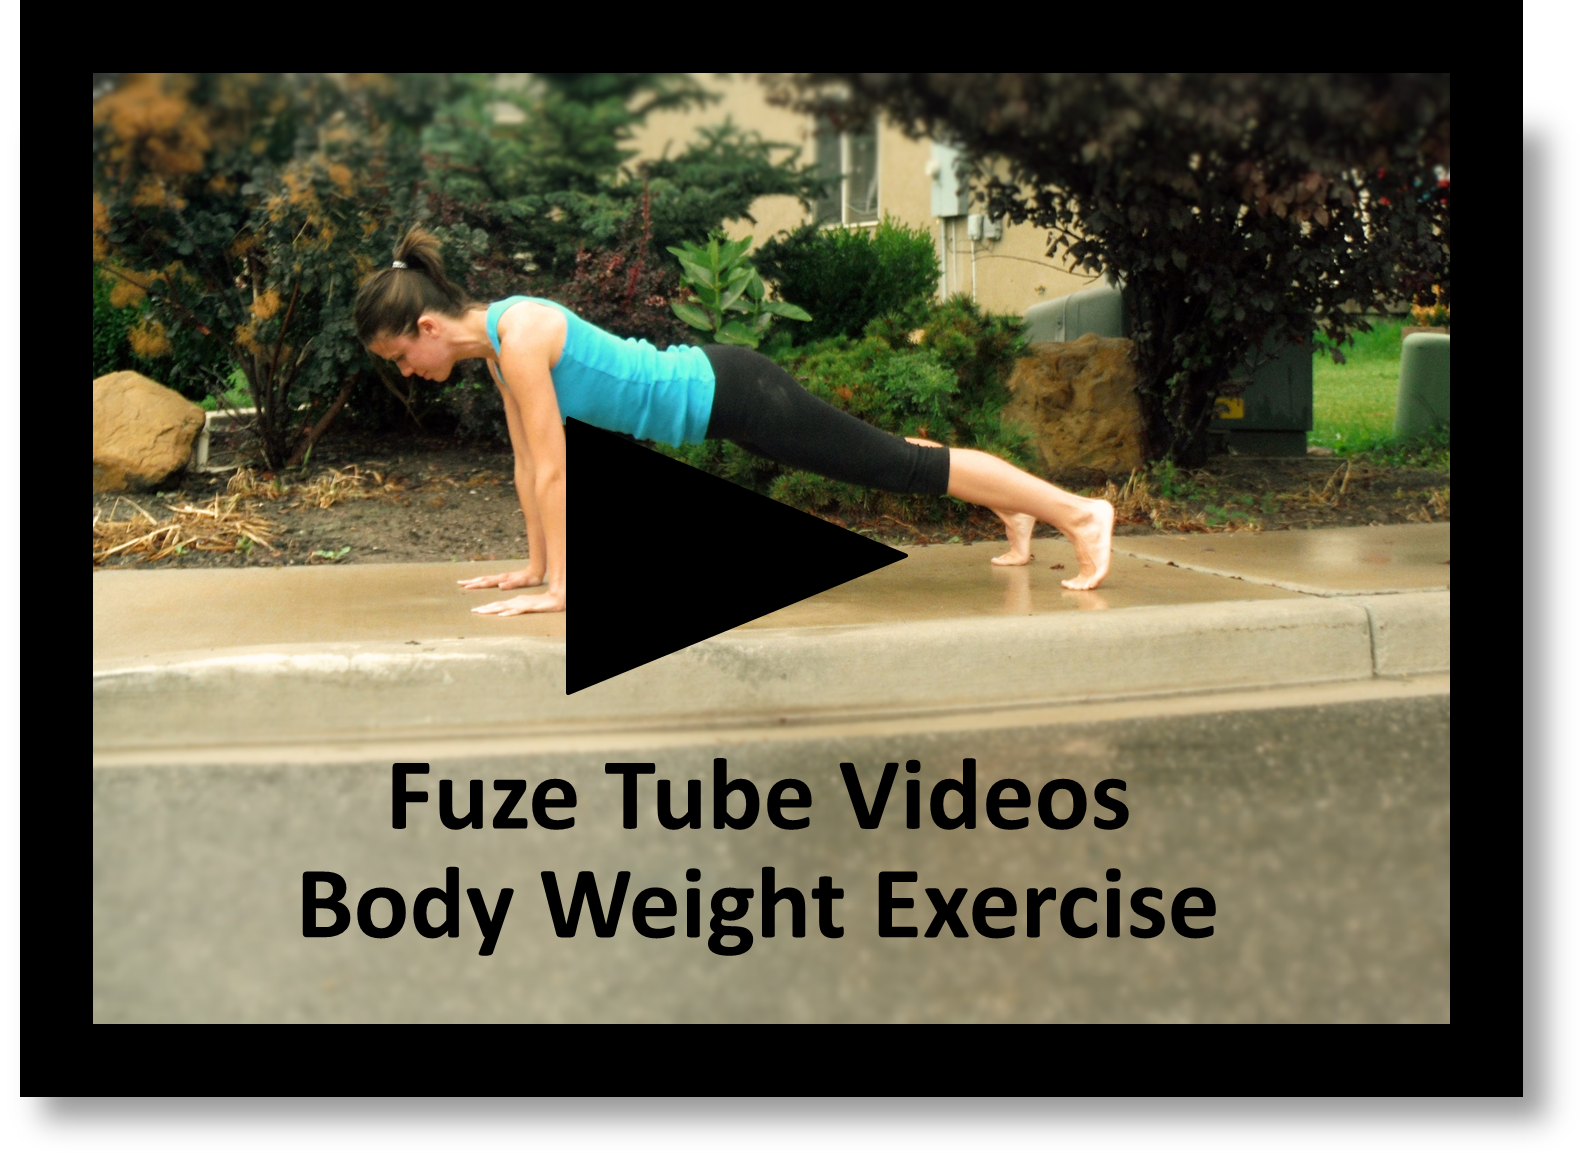 Fuze Tube Body weight